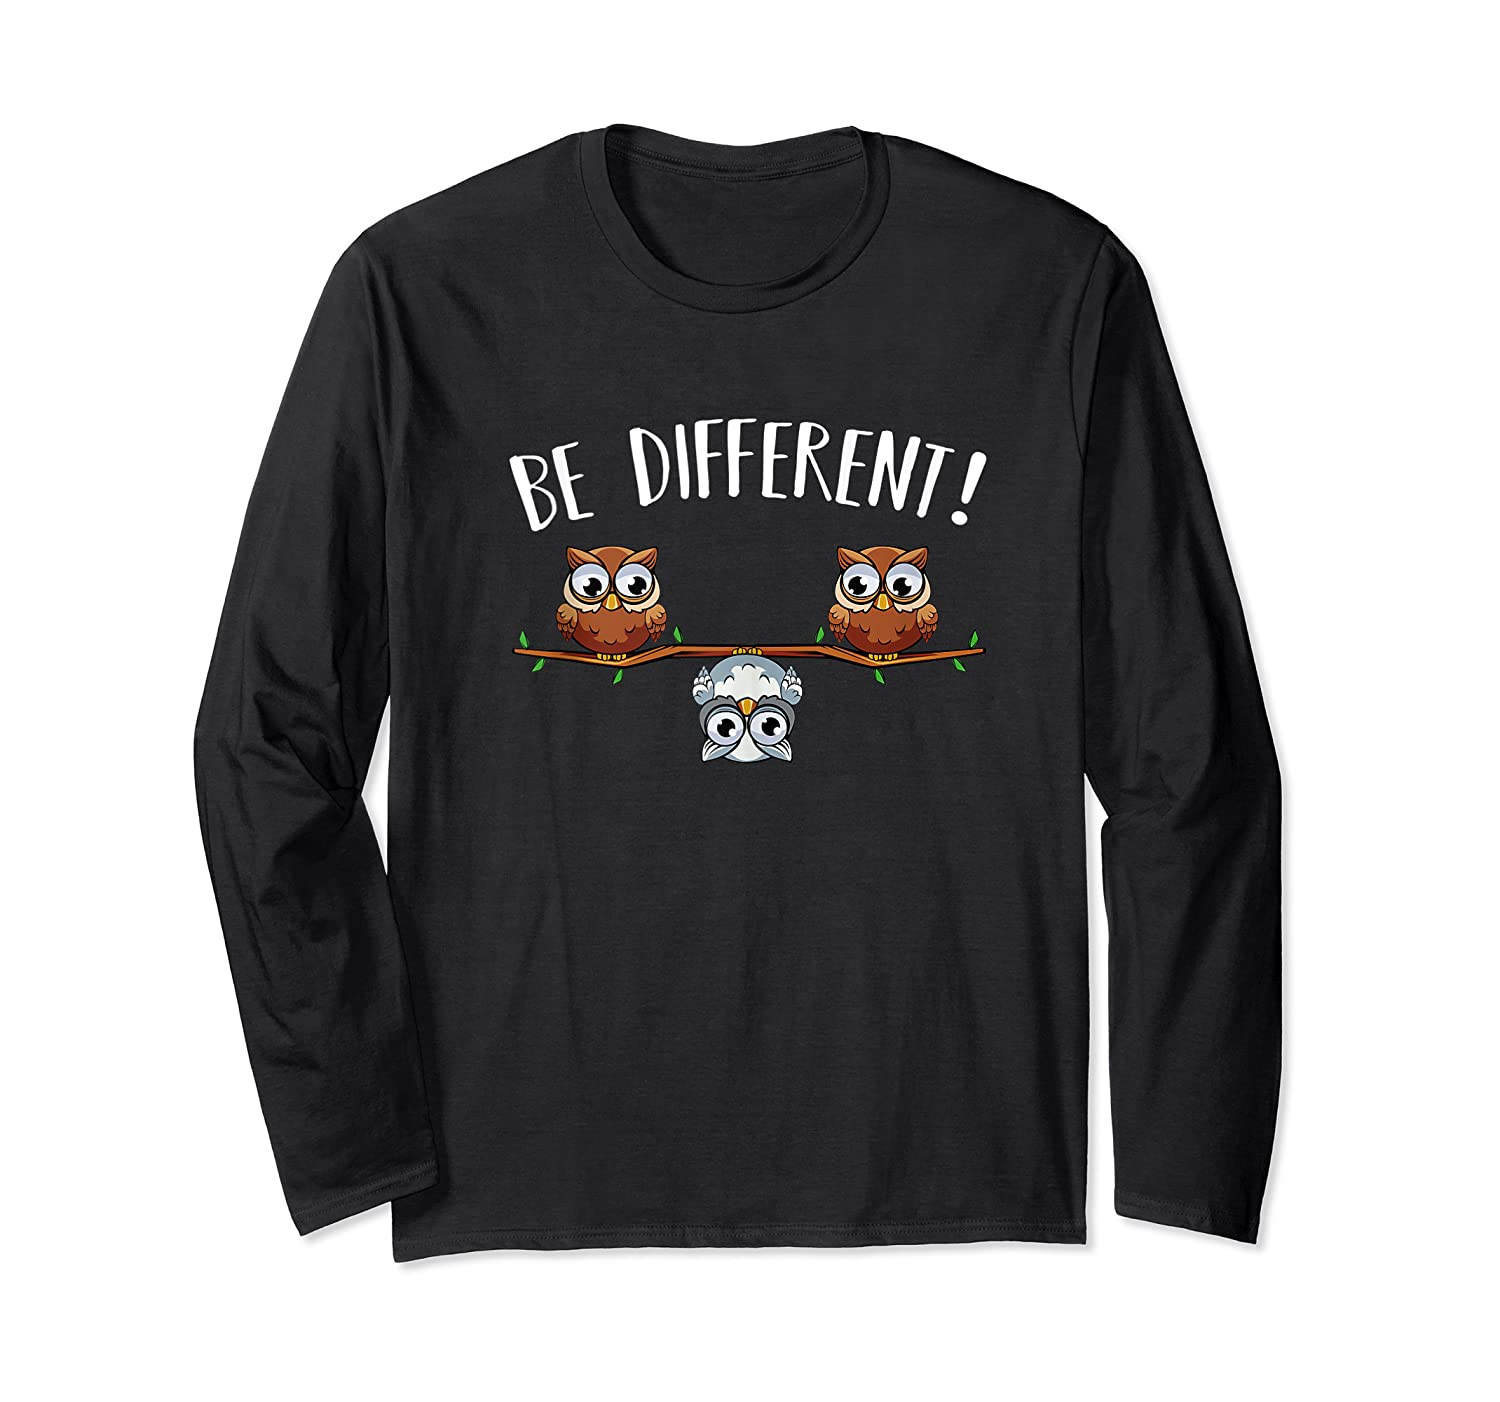 Be Different Owls Funny Animal Bird Lover Kawaii Quotes Tank Top Shirts Long Sleeve T-shirt